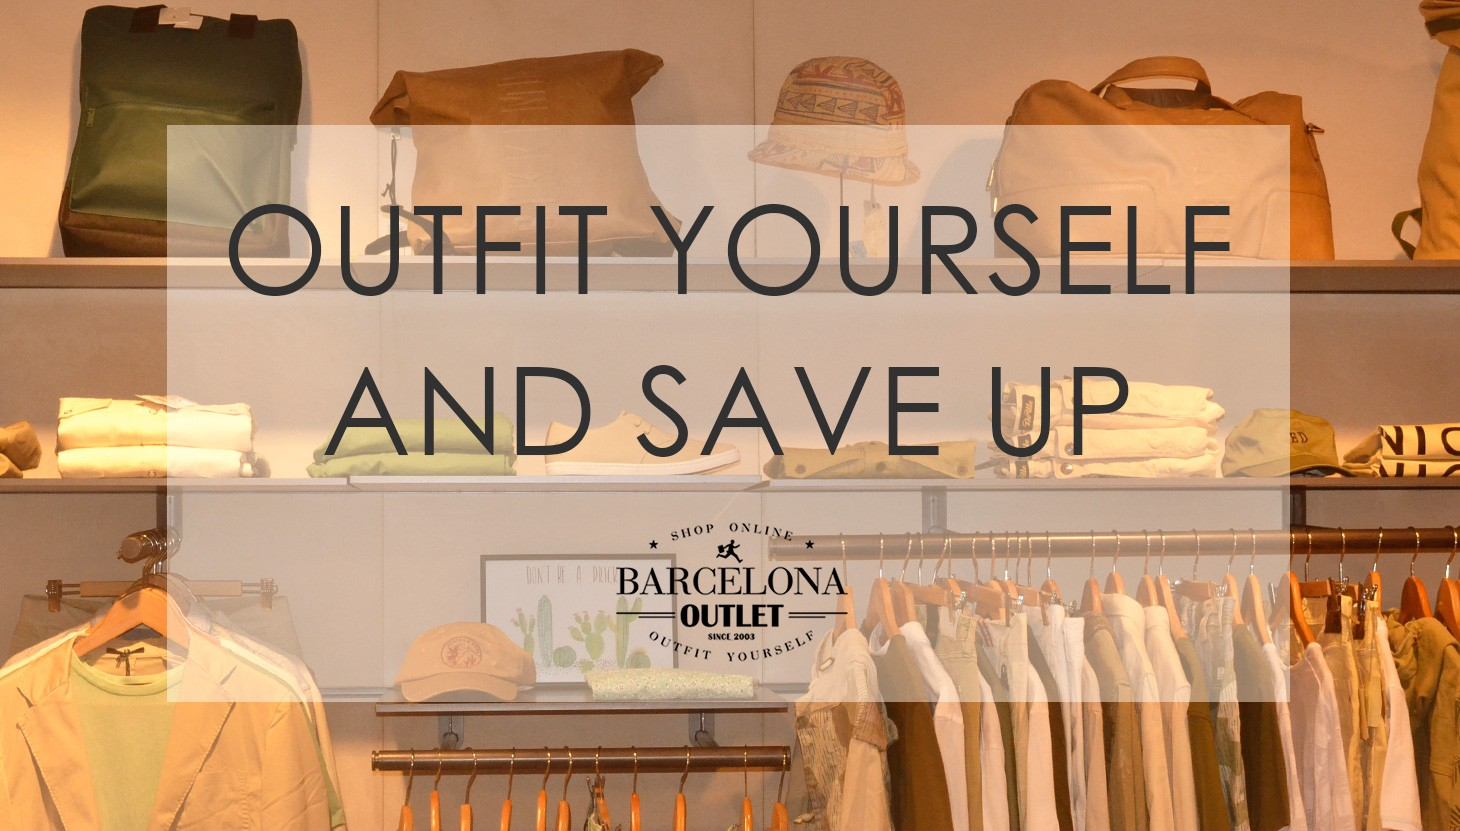 Outlet online - Barcelona Outlet